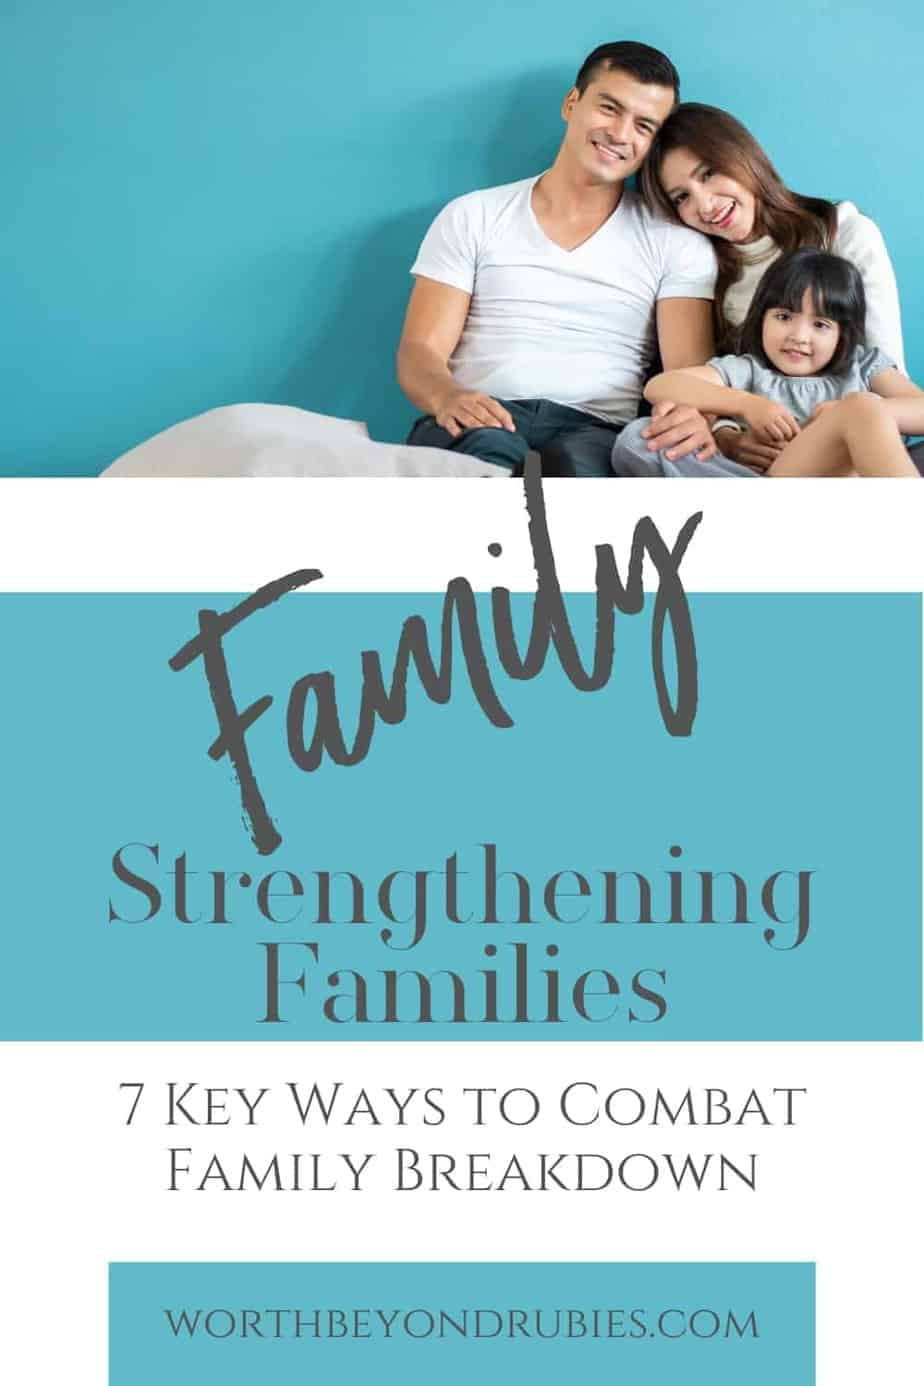 An image of two parents and a toddler against a blue background and text that says Strengthening Families - 7 Key Ways to Combat Family Breakdown